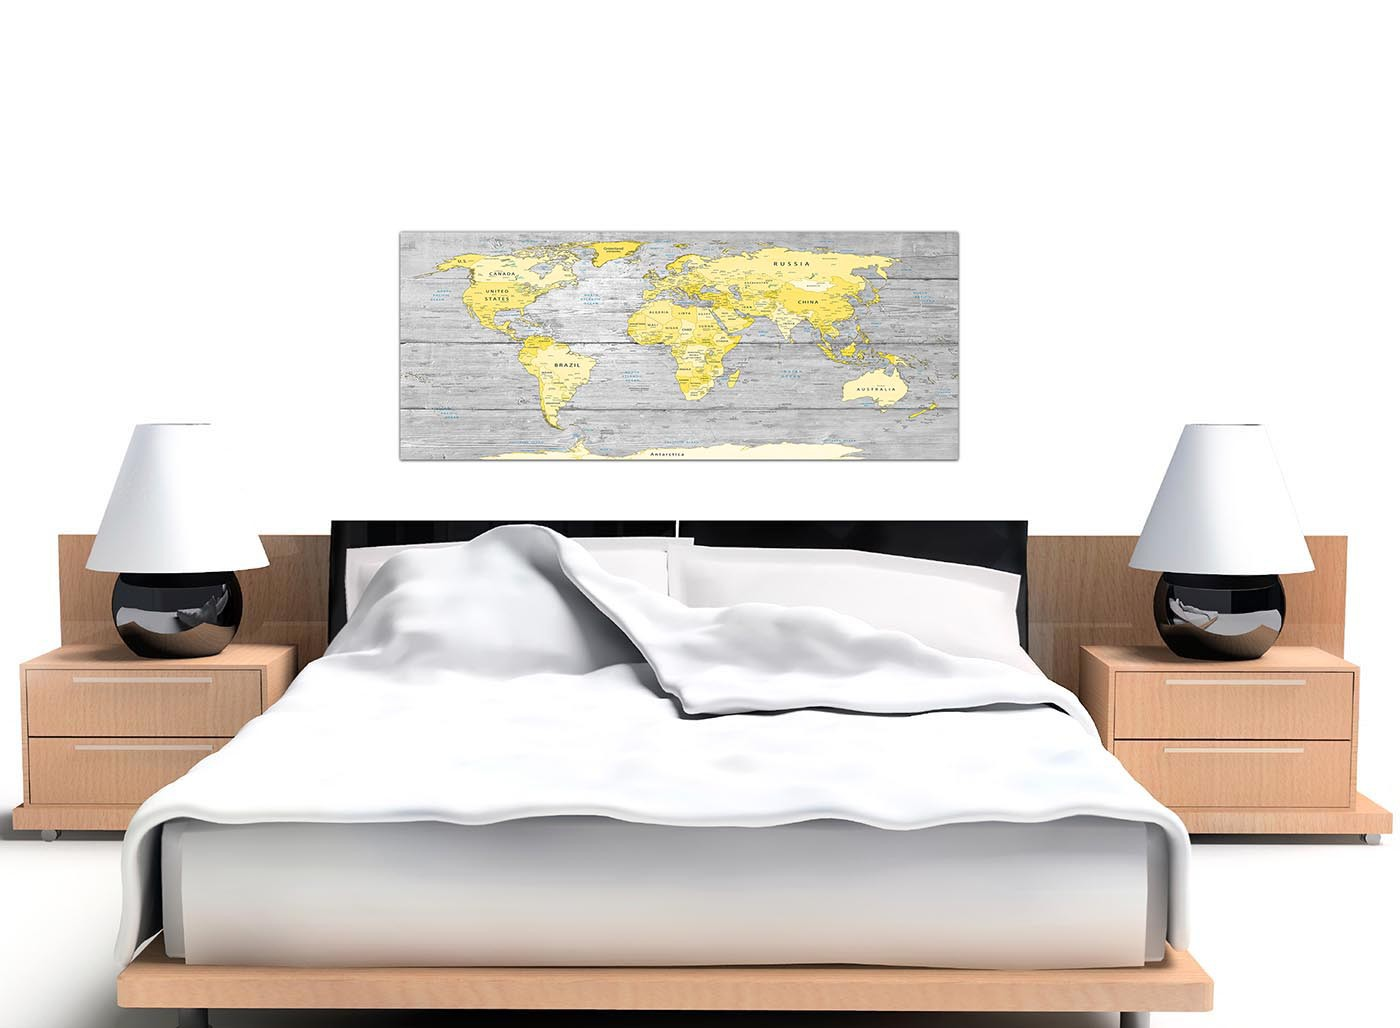 928cd14088f Display Gallery Item 3 · Cheap Yellow Grey Large Yellow Grey Map Of World  Atlas Canvas Wall Art Print Maps Canvas Display Gallery Item 4